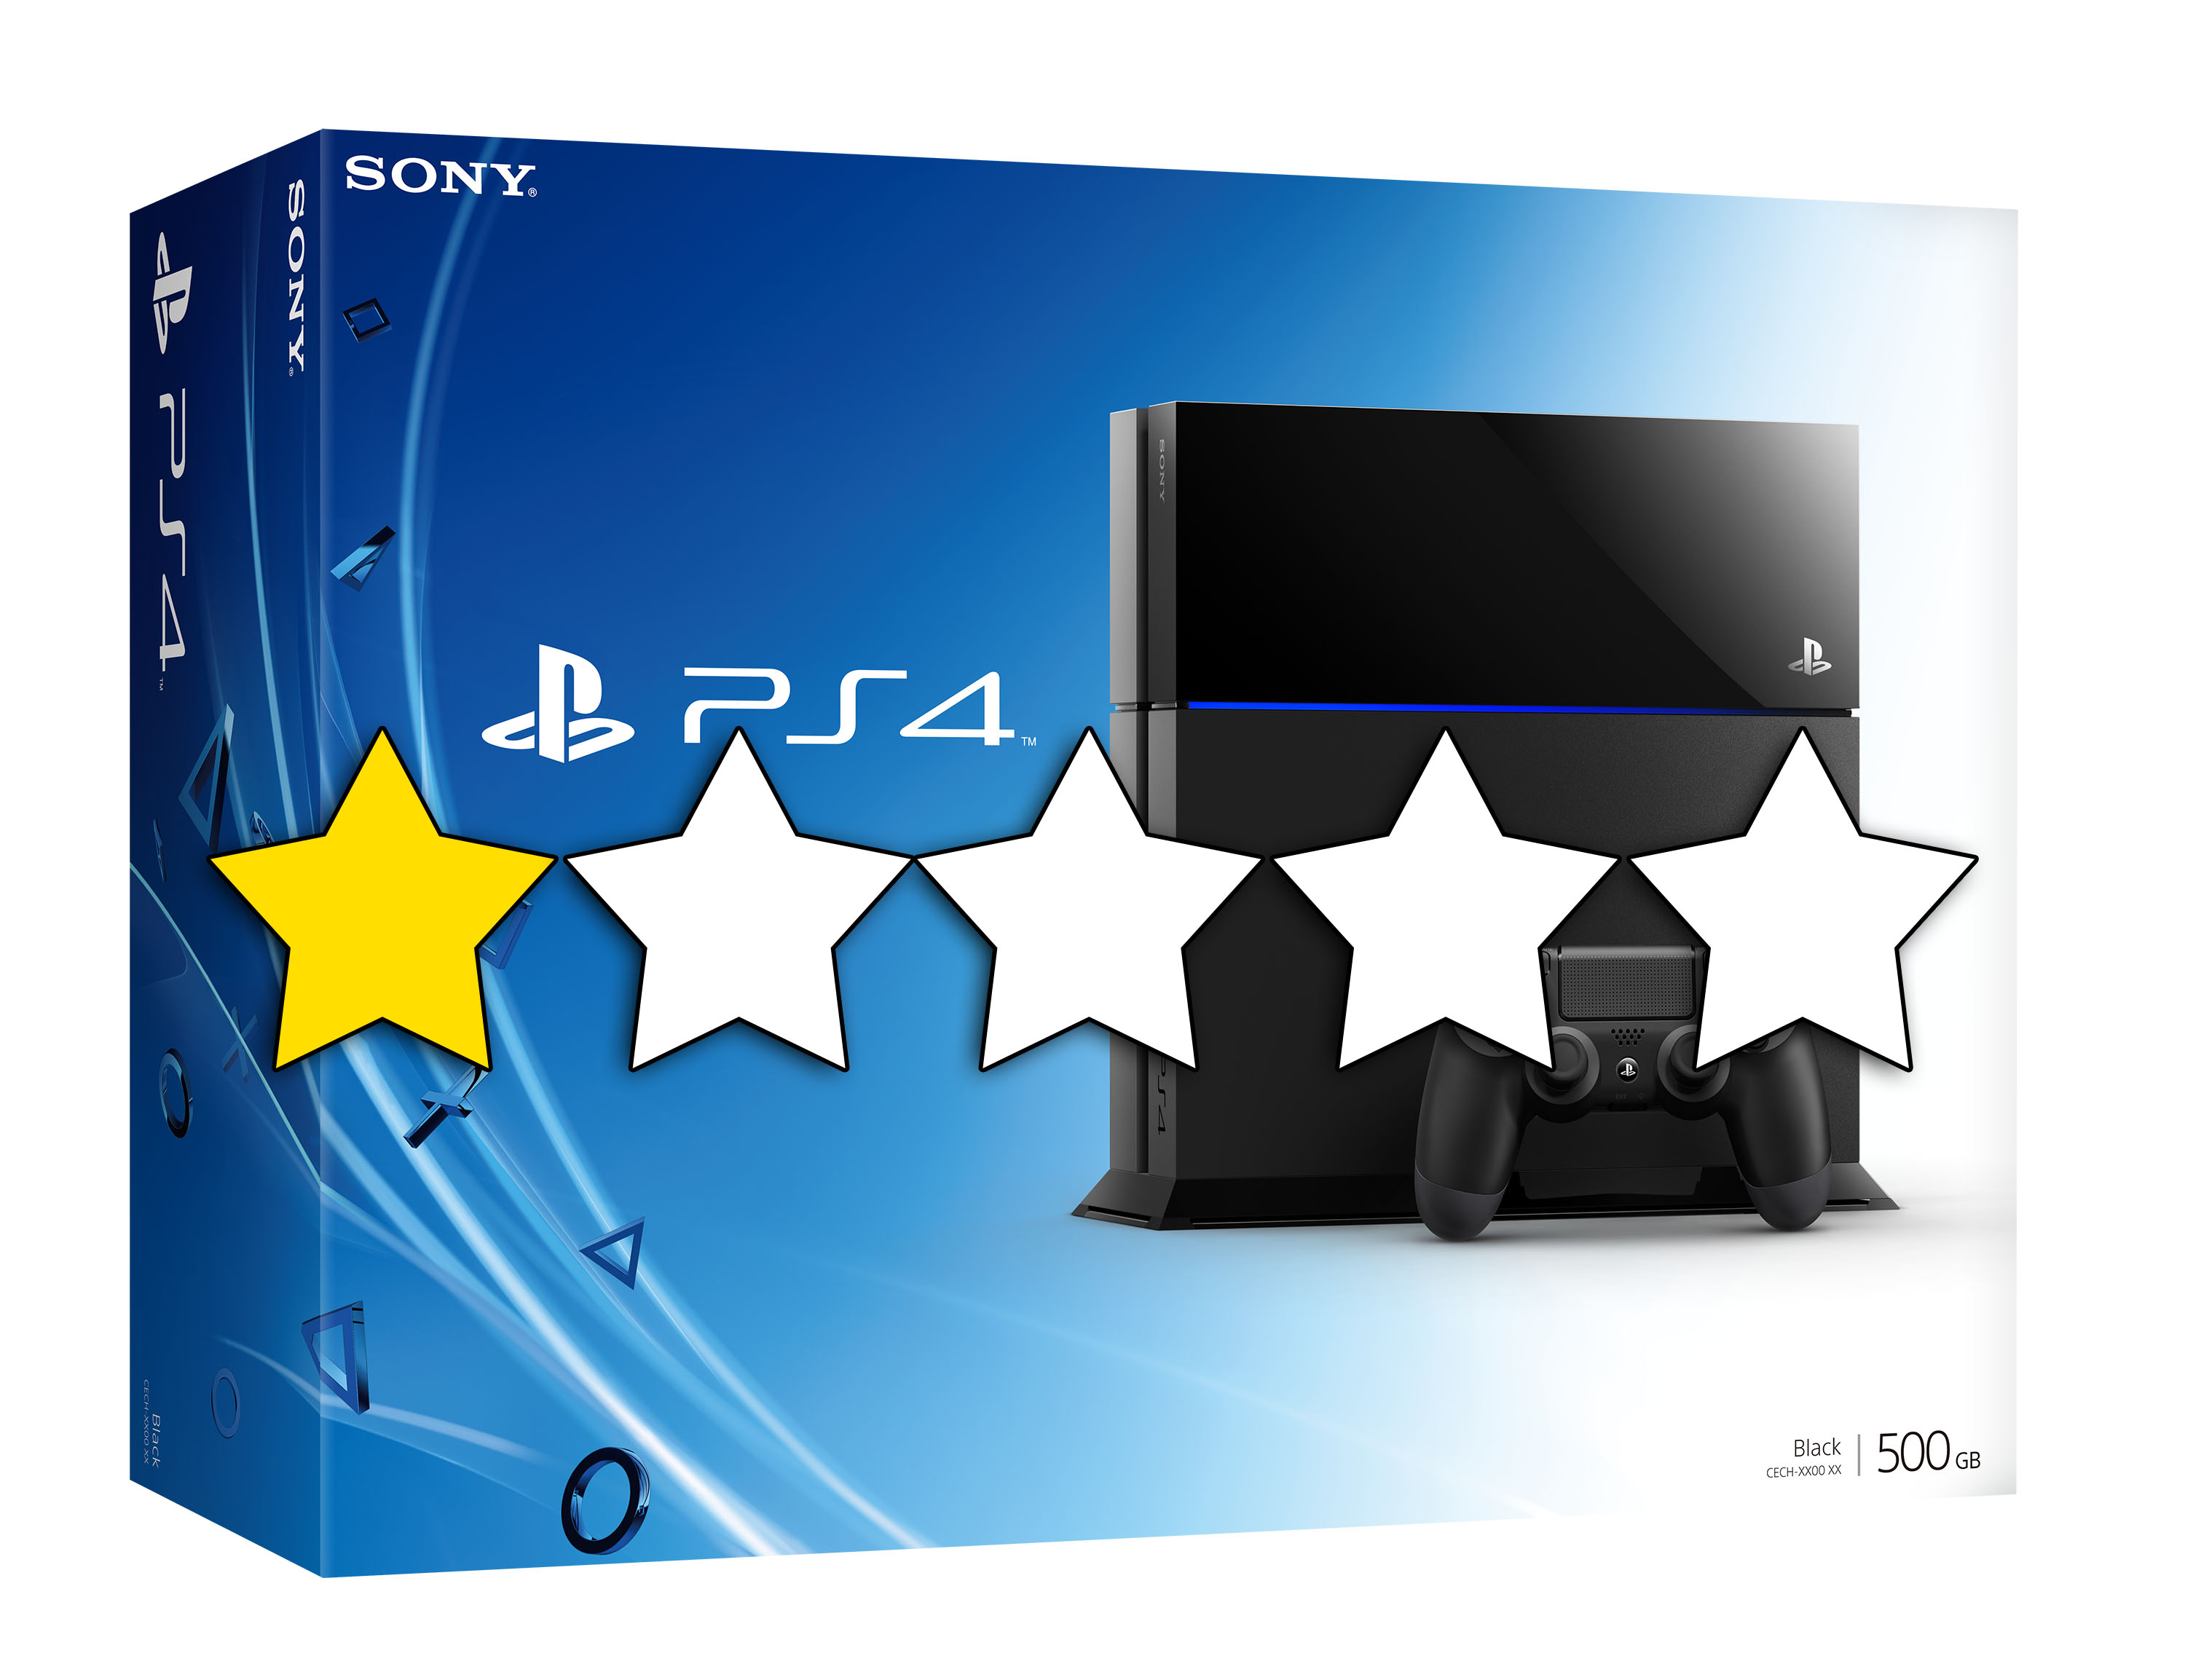 PS4 Launches In Europe And The One Star Dance Restarts On